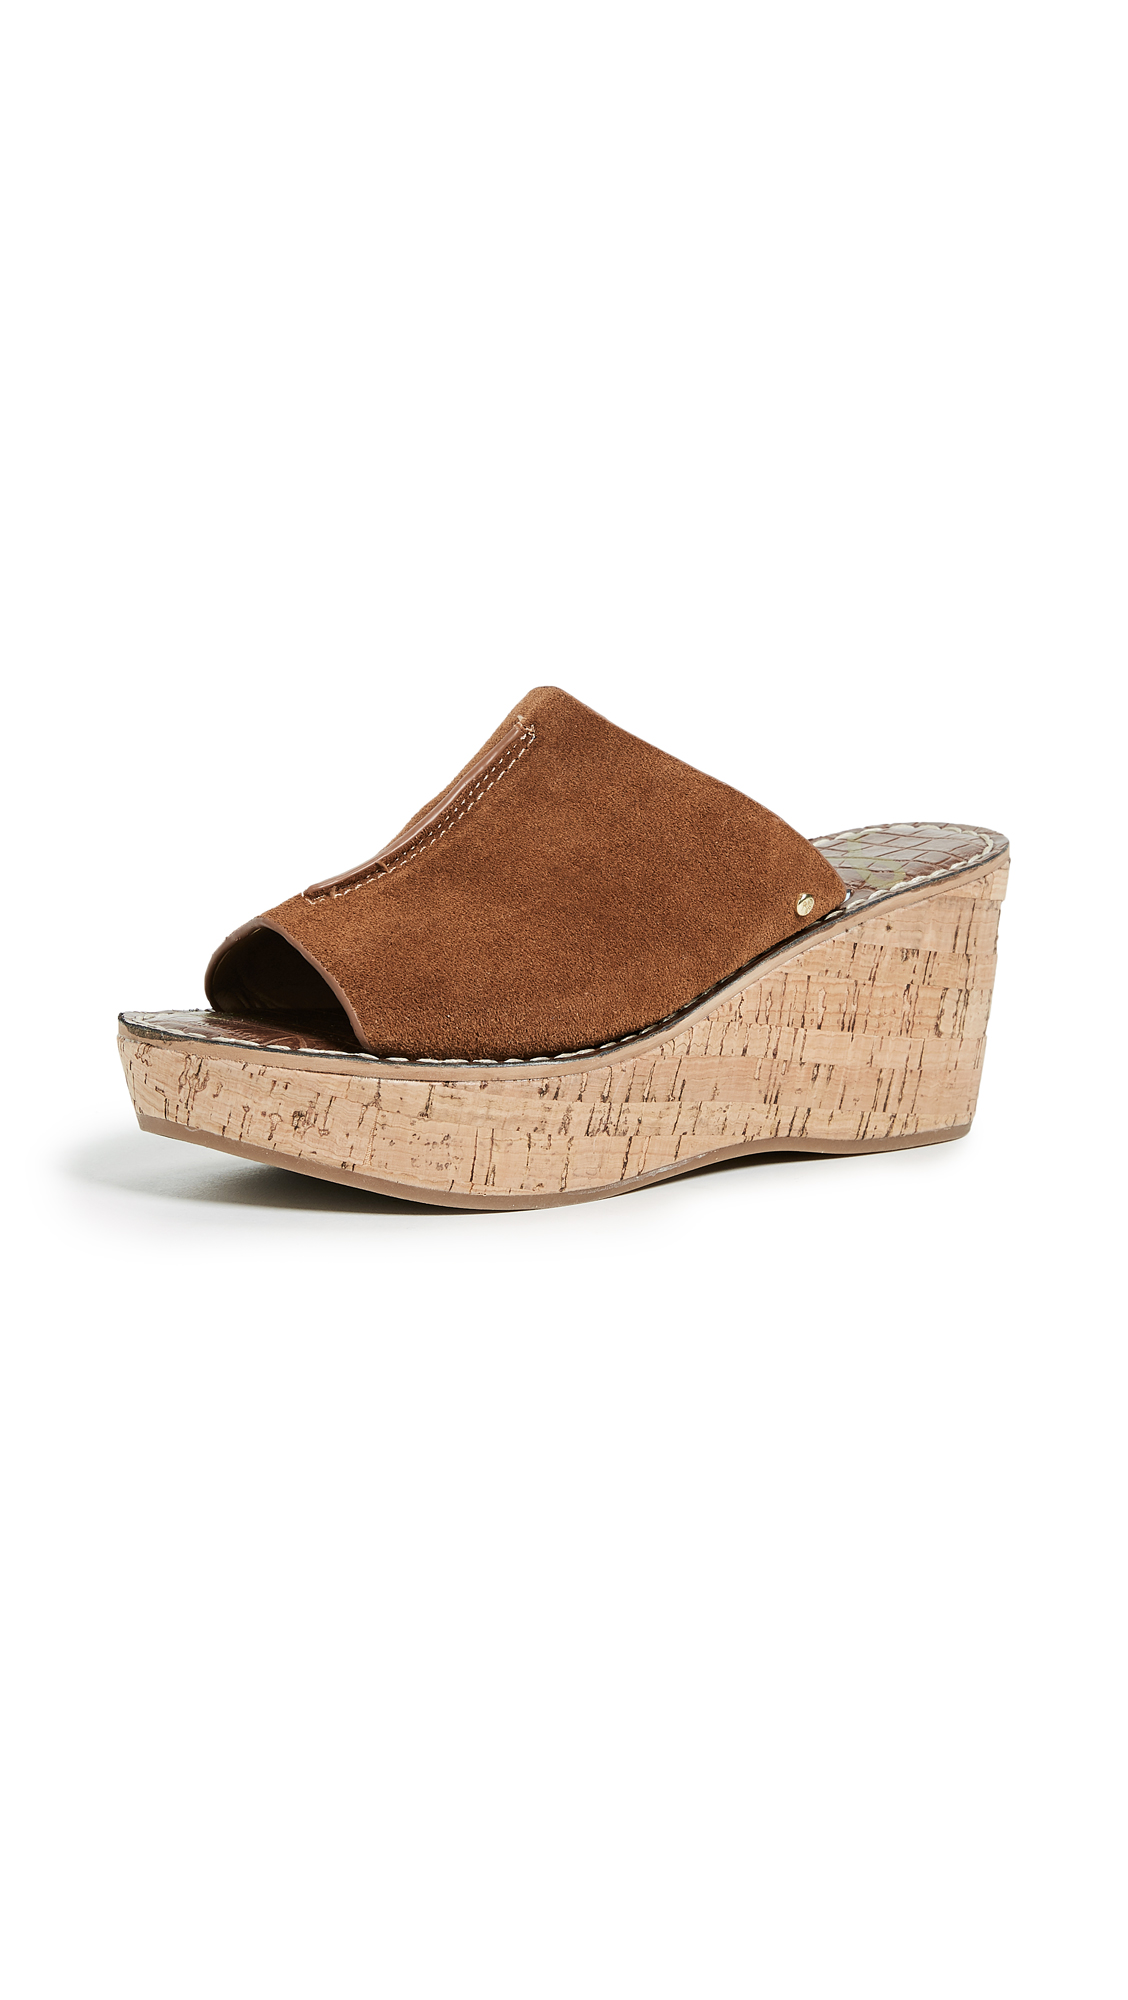 Sam Edelman Ranger Cork Wedge Mules - Luggage